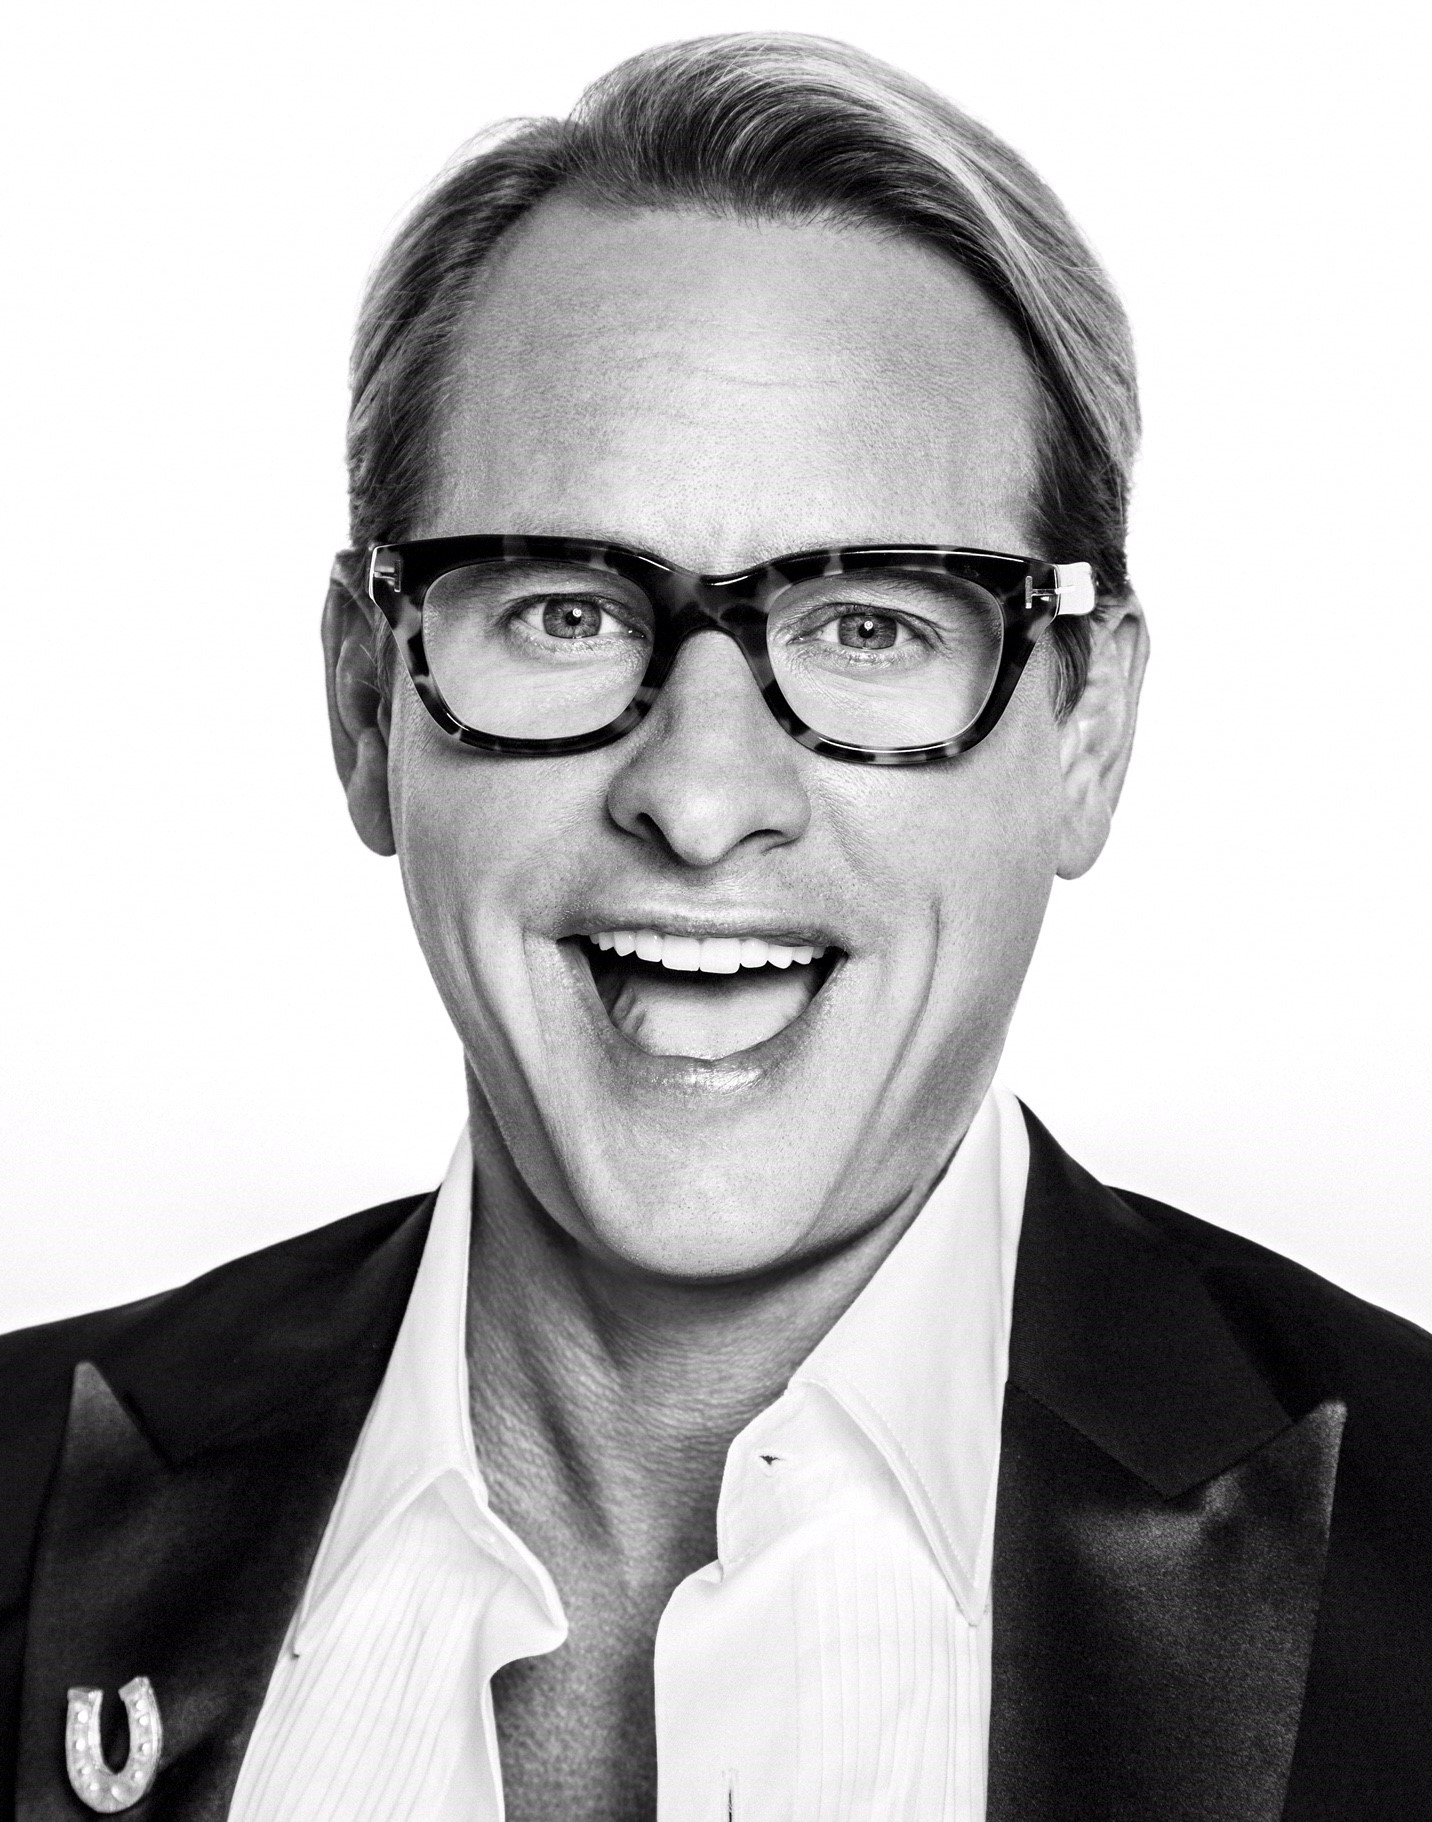 Style Advice from Carson Kressley